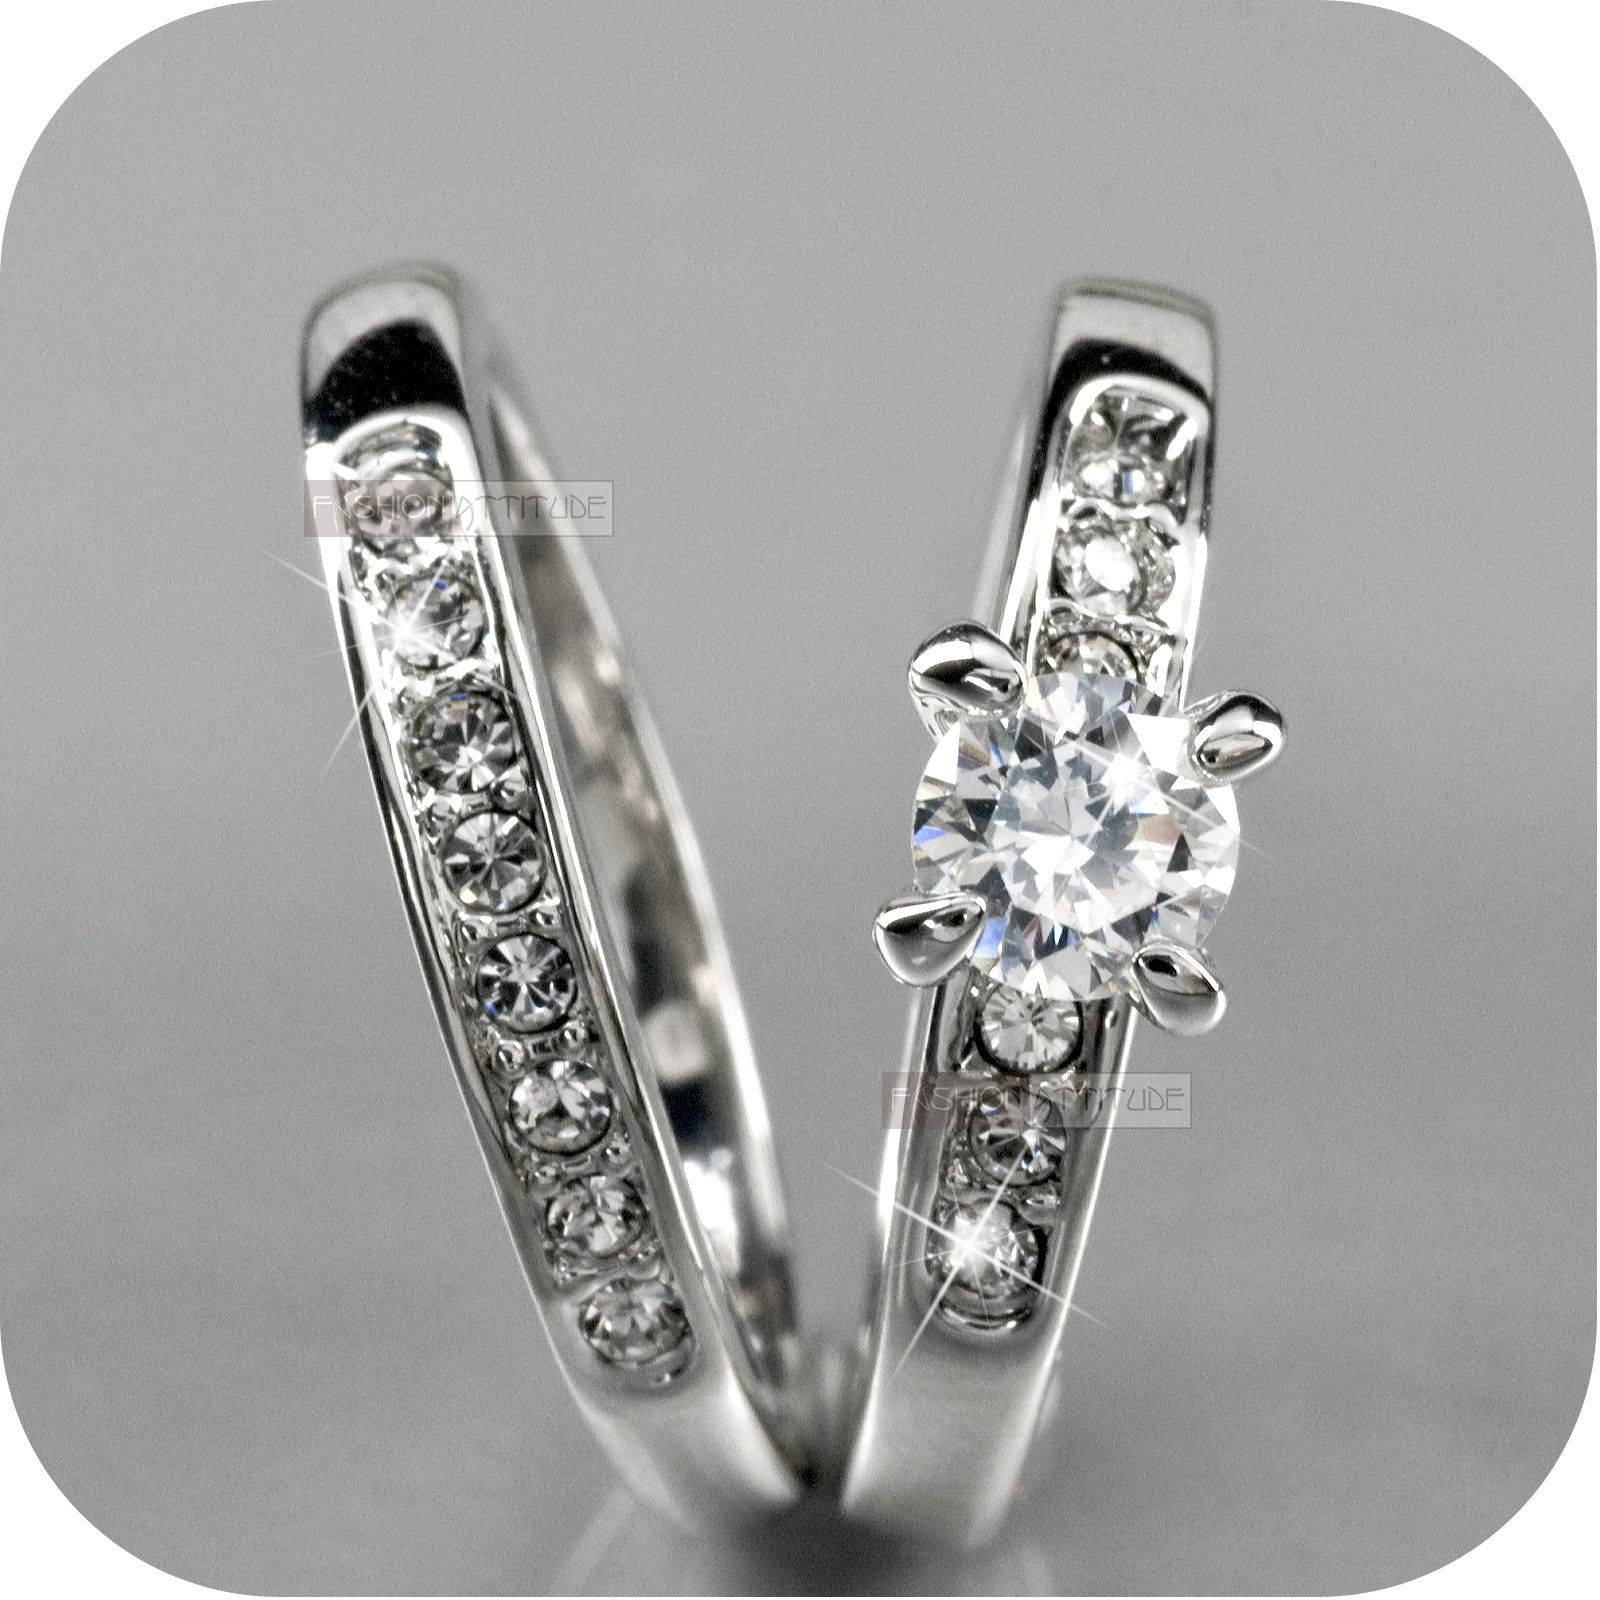 18k white gold gp made with swarovski crystal wedding ring set us regarding swarovski crystal wedding - Crystal Wedding Rings